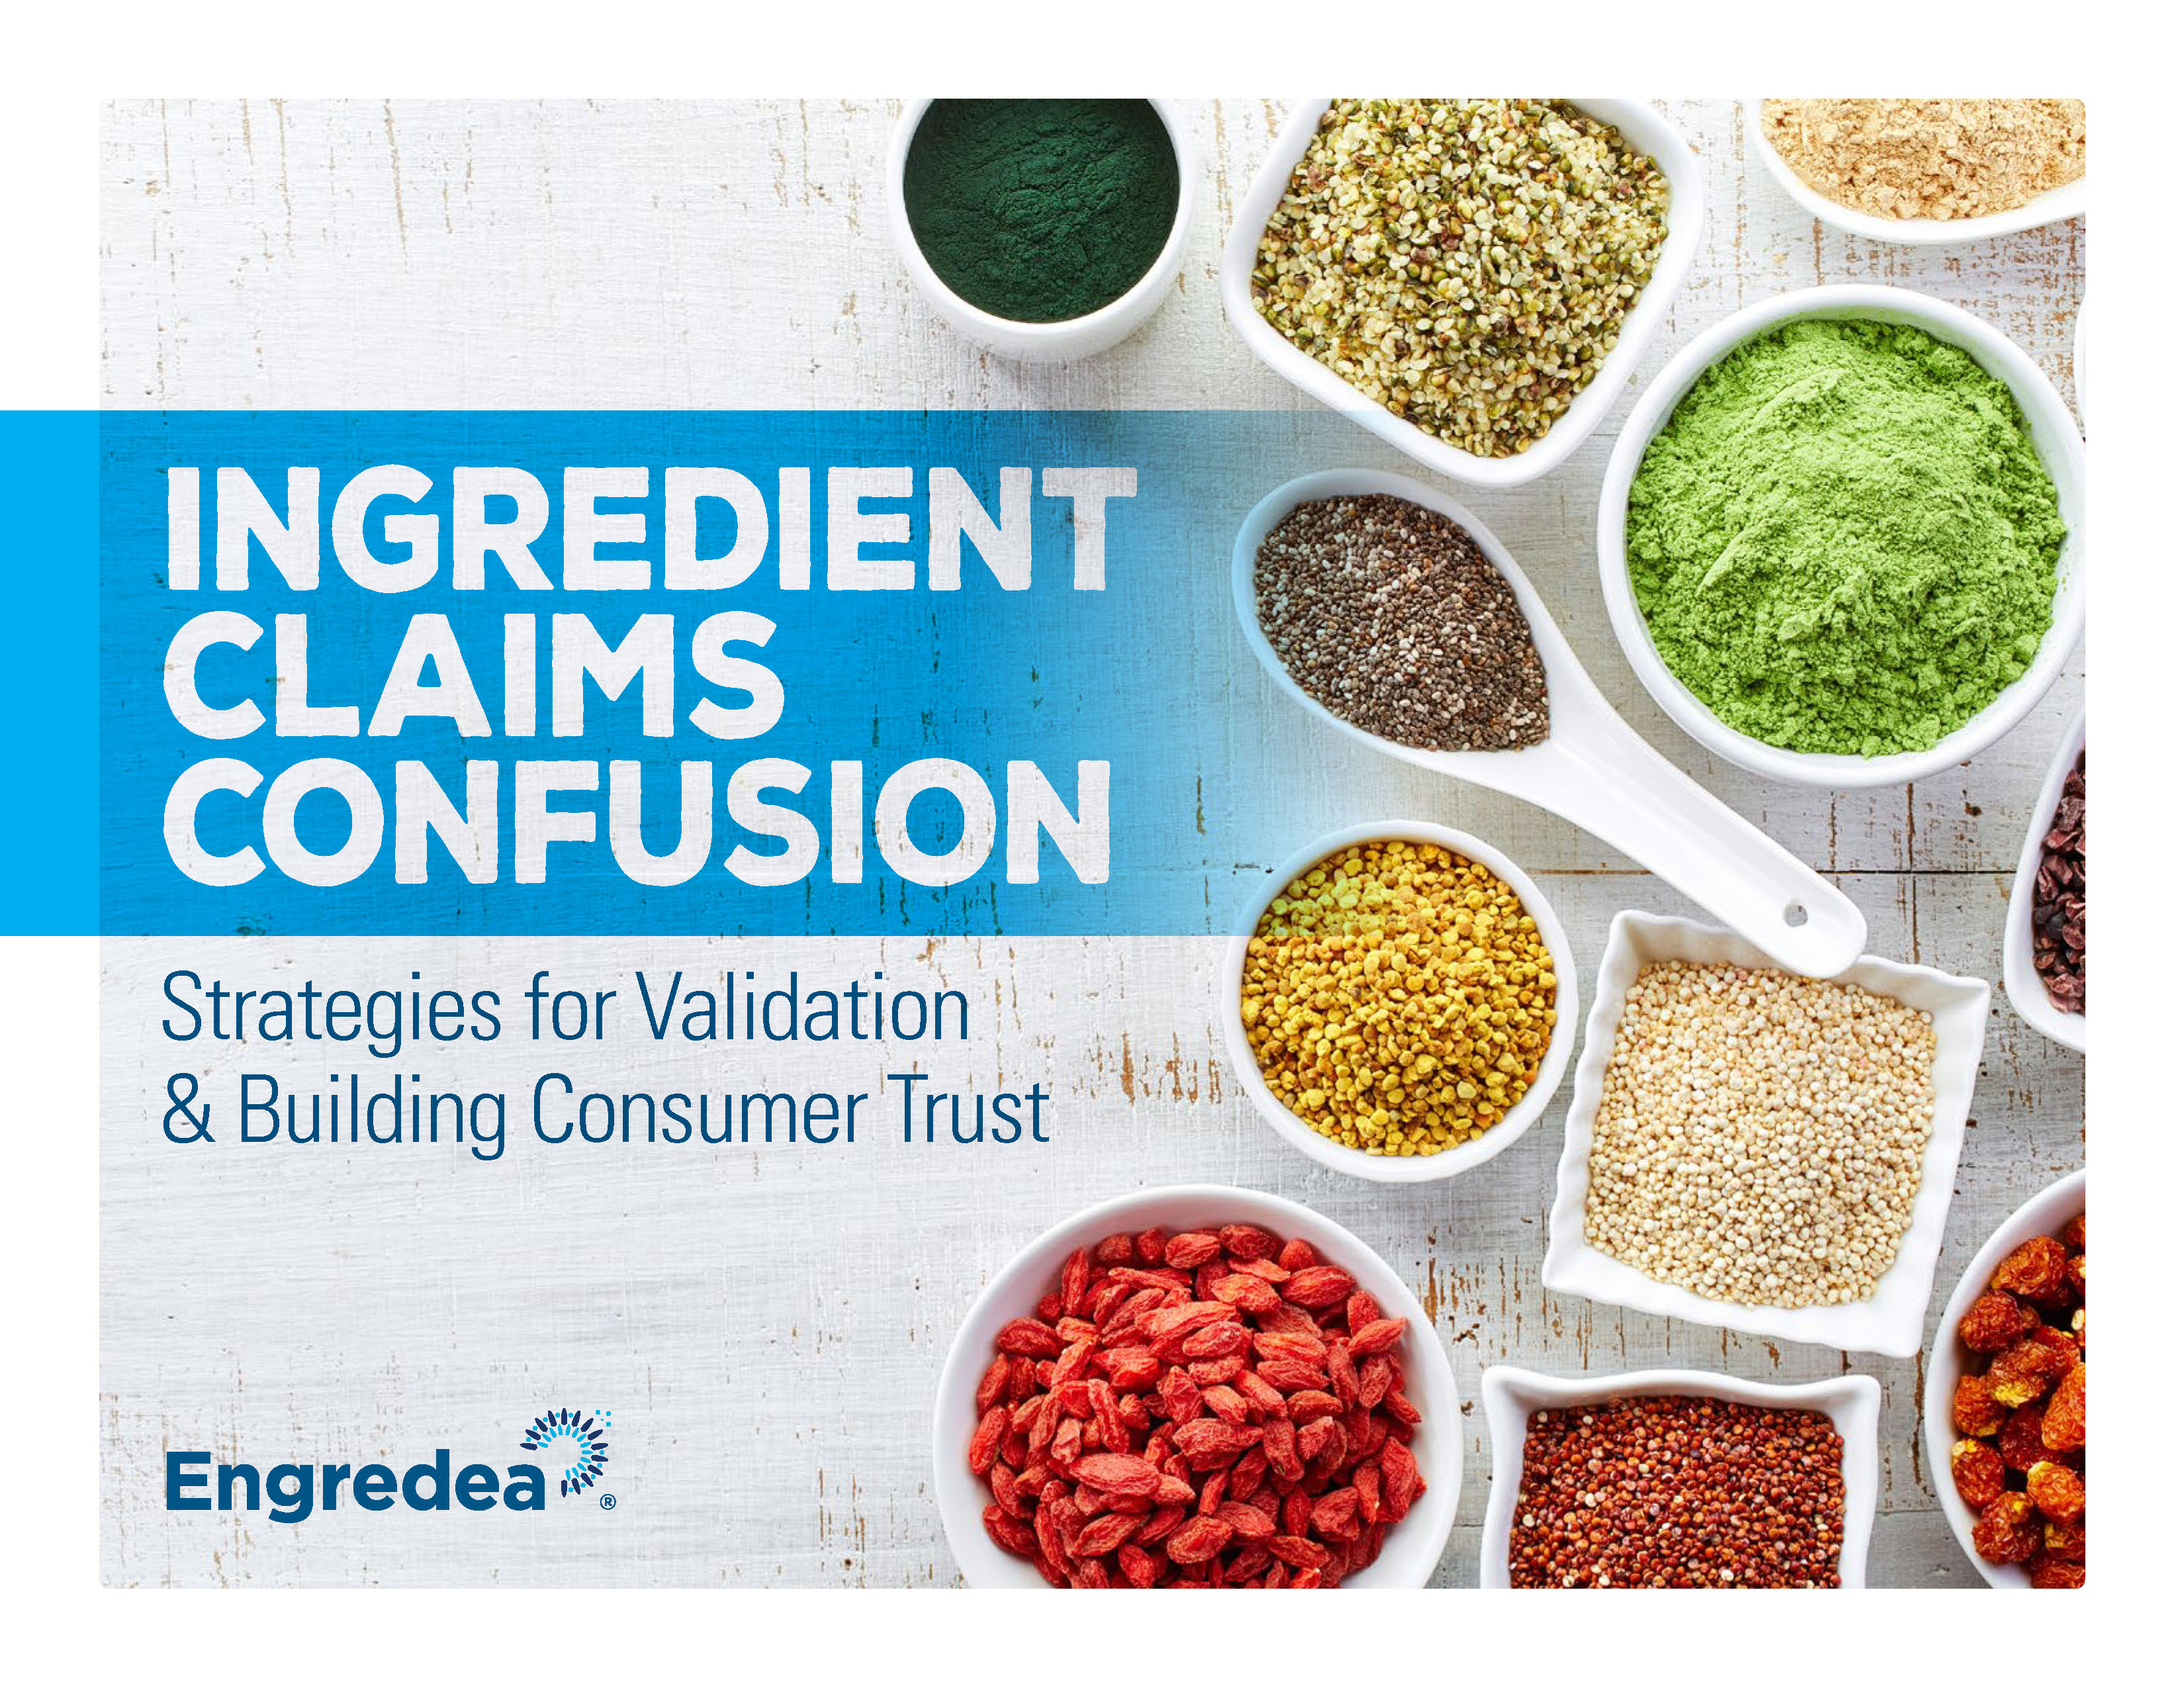 Ingredients_Claims_Confusion-v4_cover.jpg